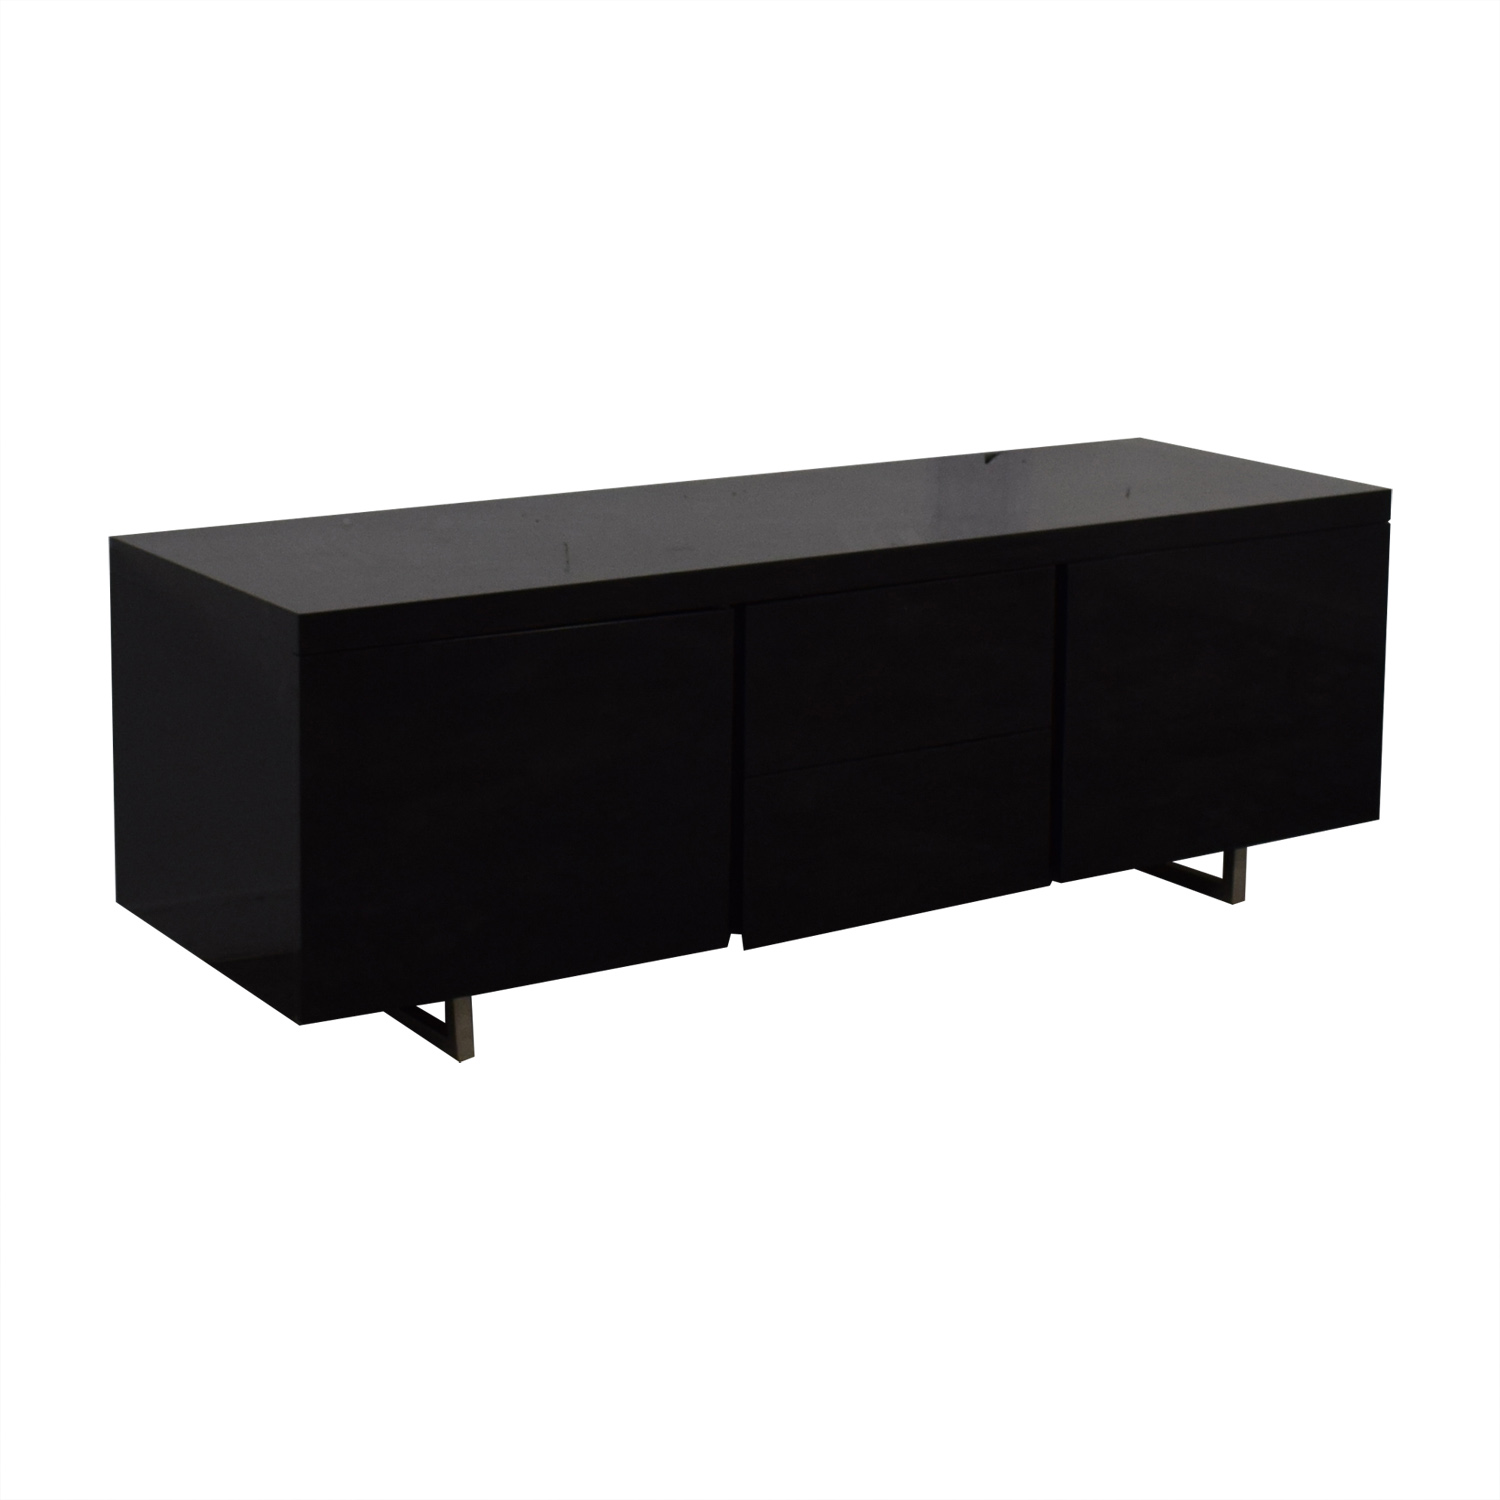 Modani Modani Black Media Cabinet coupon